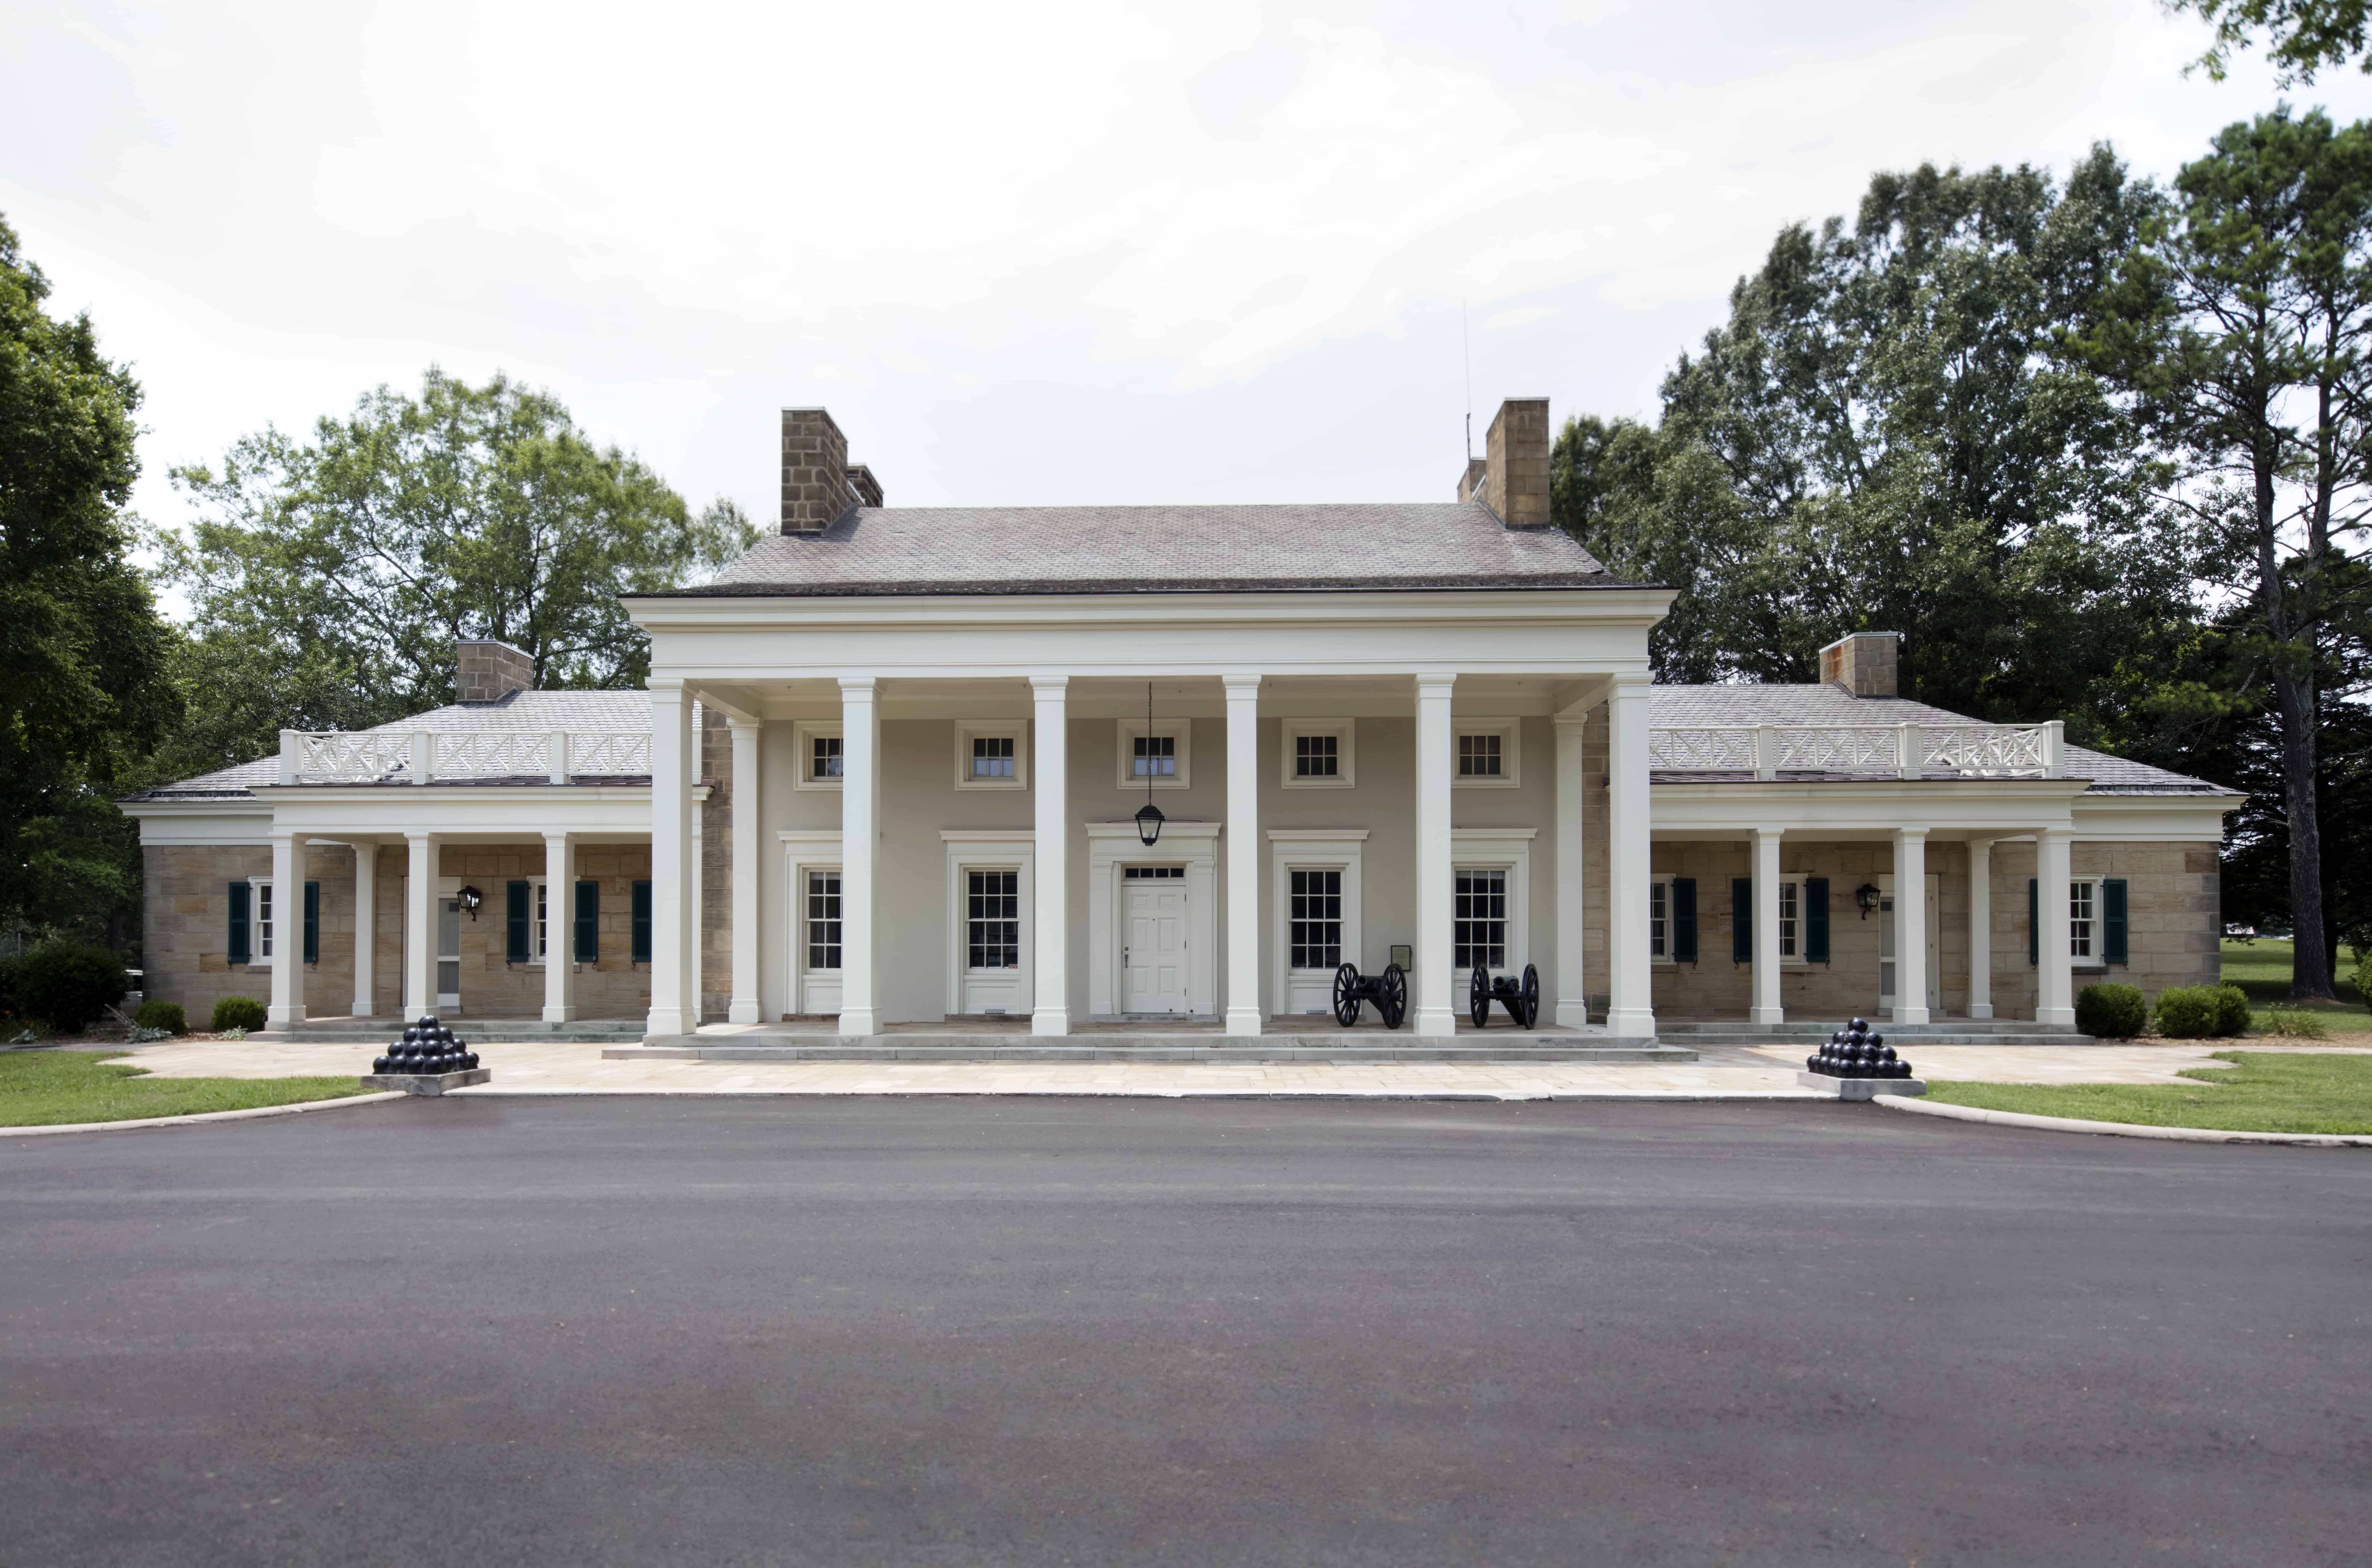 Chickamauga Battlefield Visitor Center